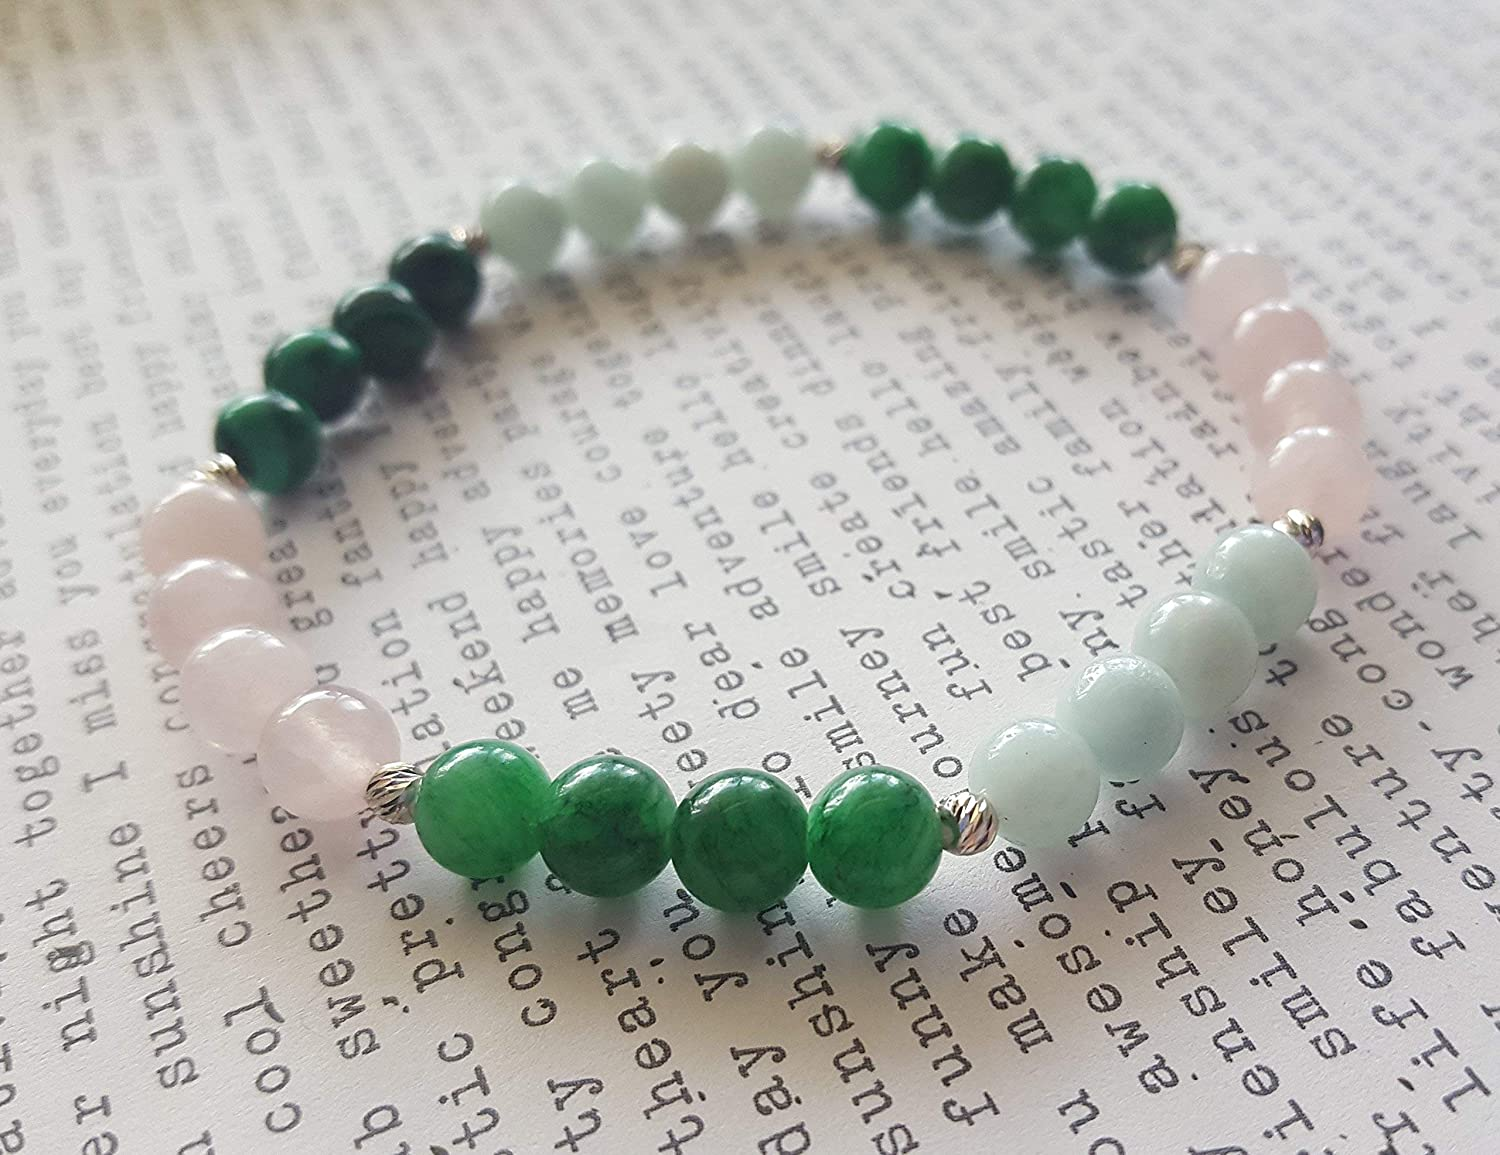 Gemstone Bracelet, True Love, Soulmate, Heart Chakra, Balance, Harmony, Empath, Rose Quartz, Malachite, Amazonite, Green Jade